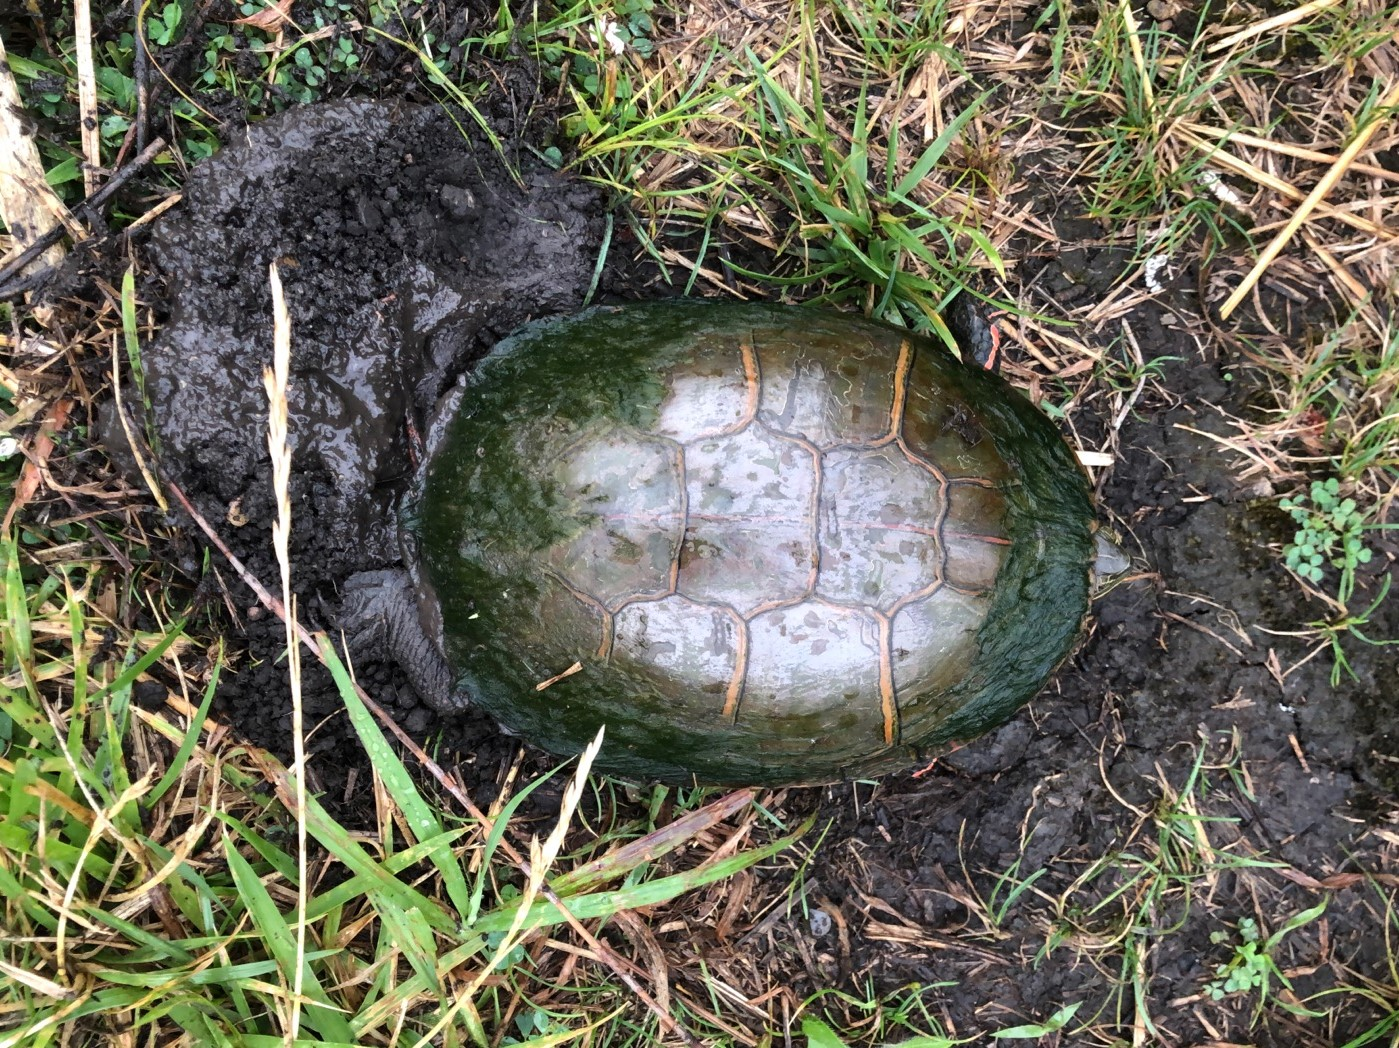 A turtle laying eggs in a west suburban forest preserve, then moving on. Photo provided by Pete Lamar